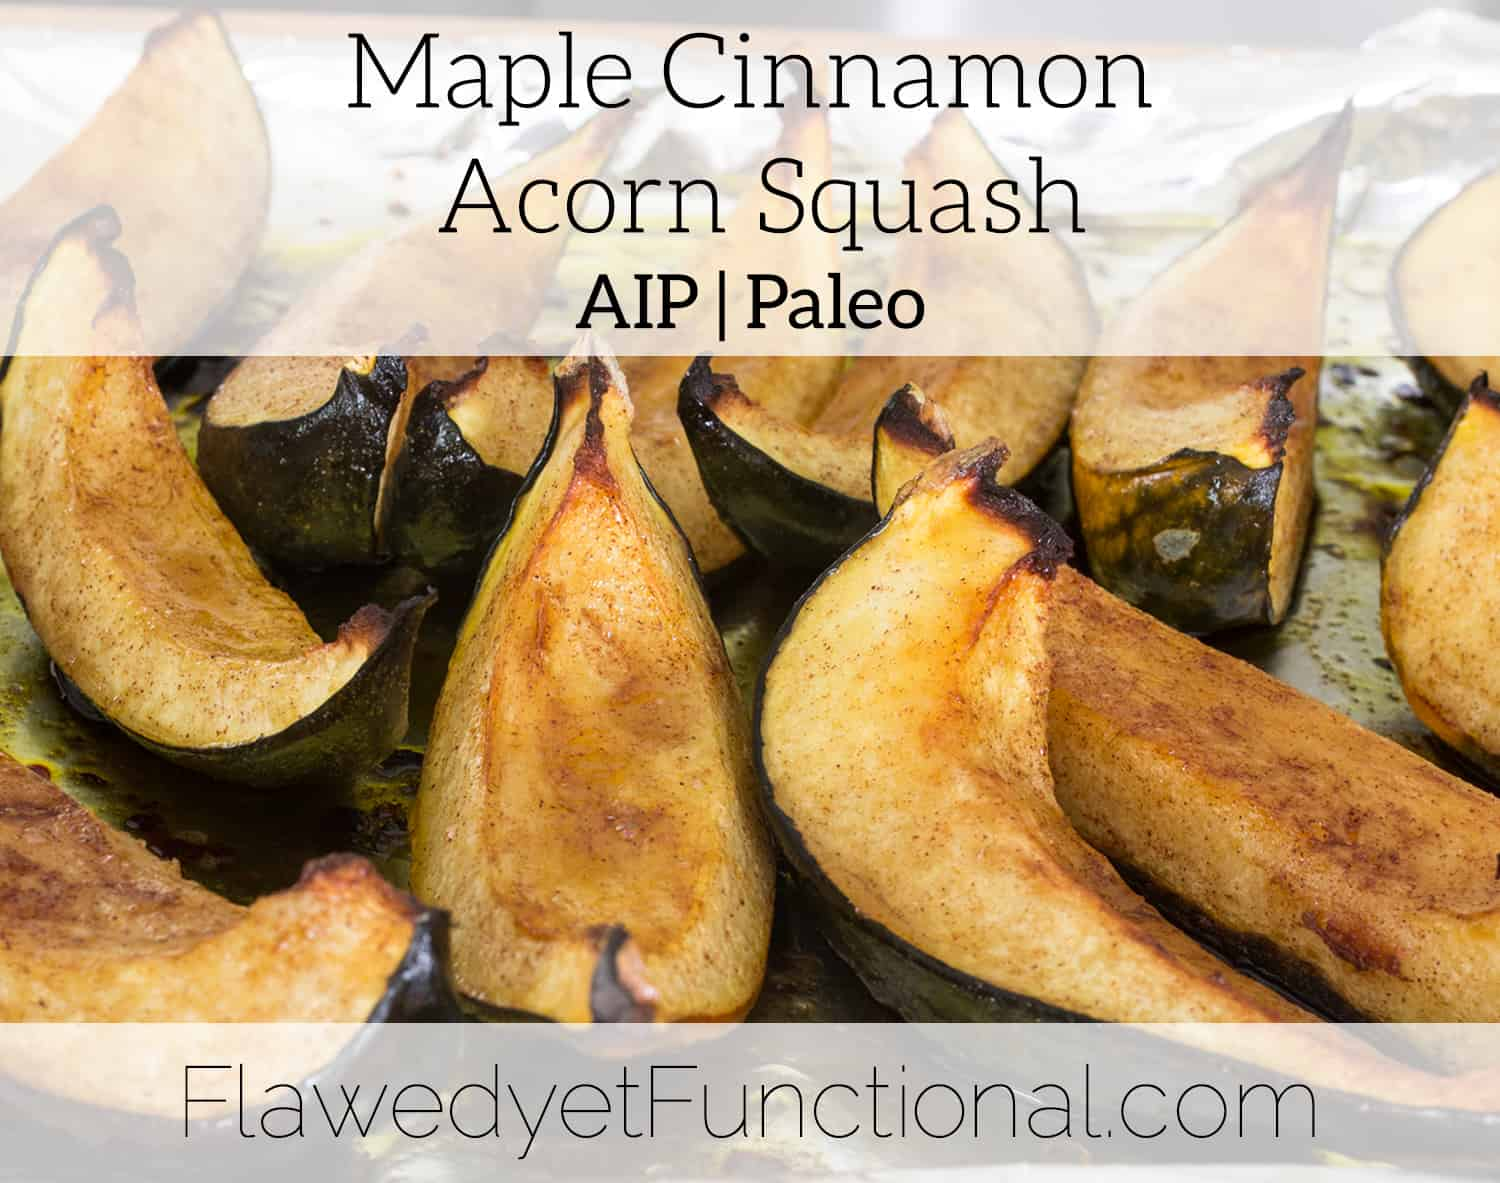 Maple Cinnamon Acorn Squash